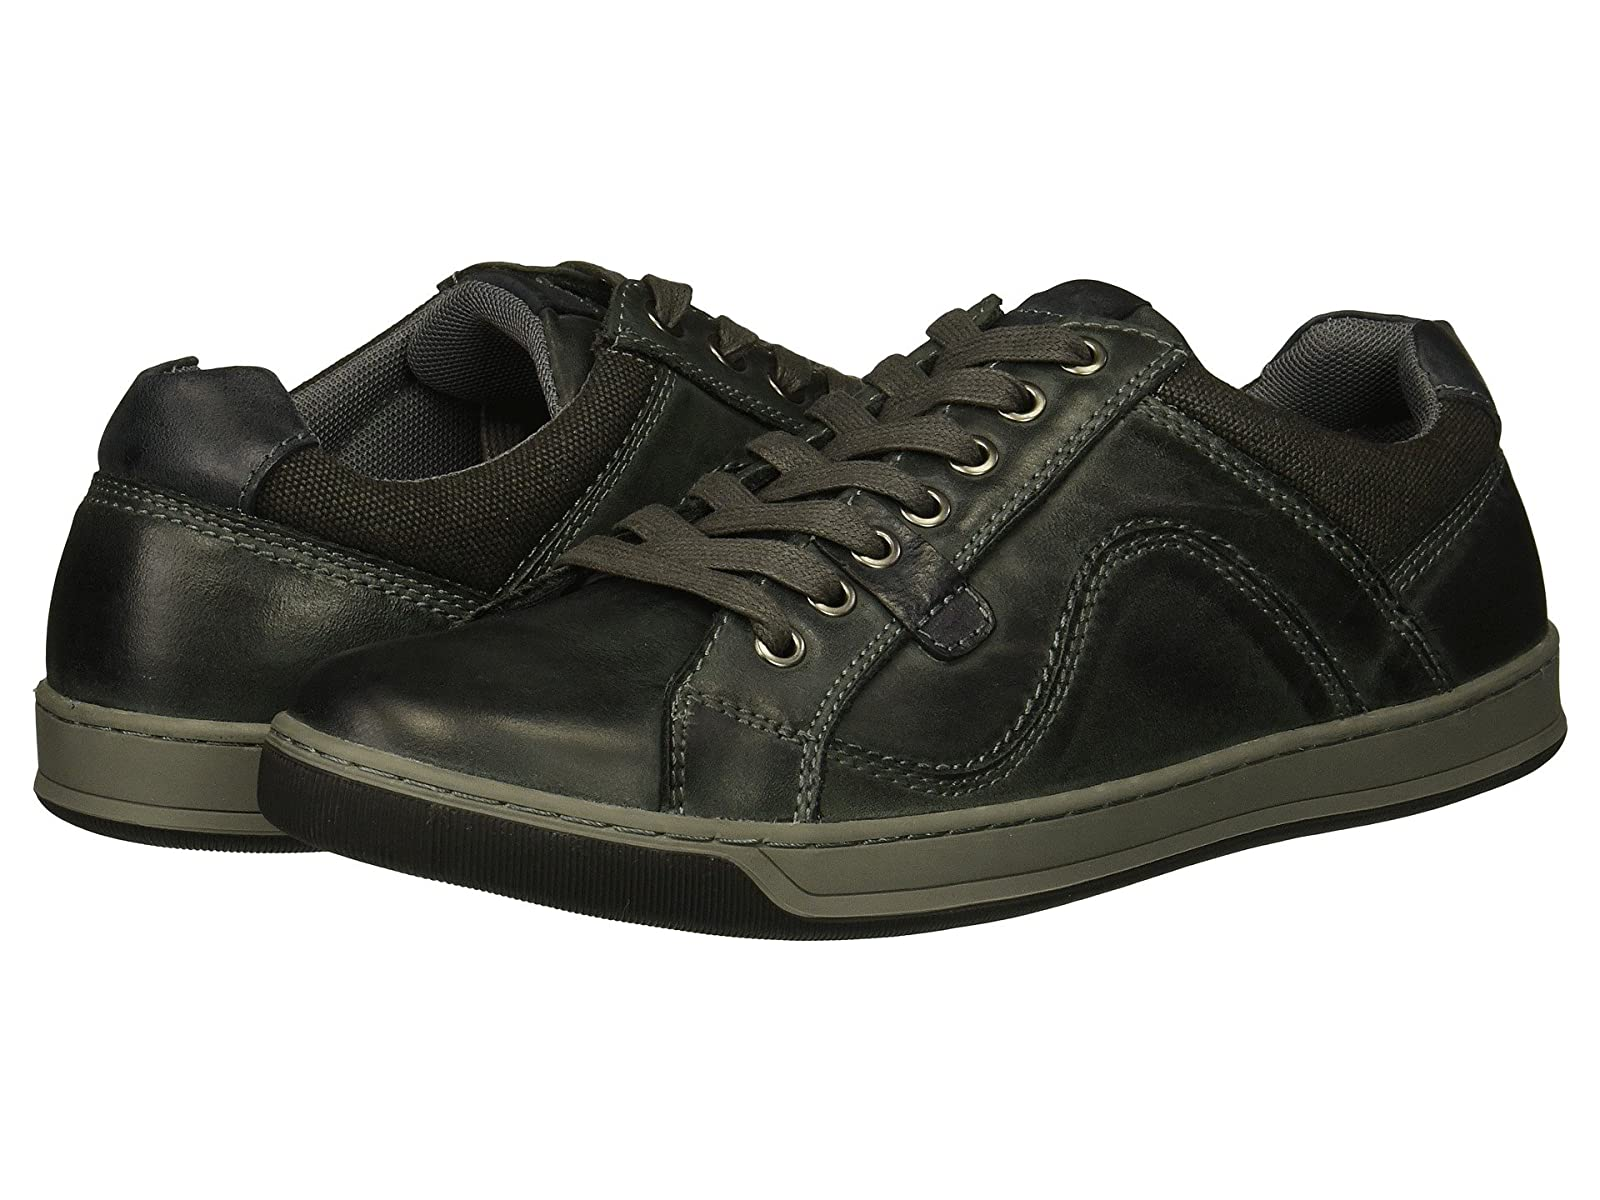 Steve Madden ChaterAtmospheric grades have affordable shoes